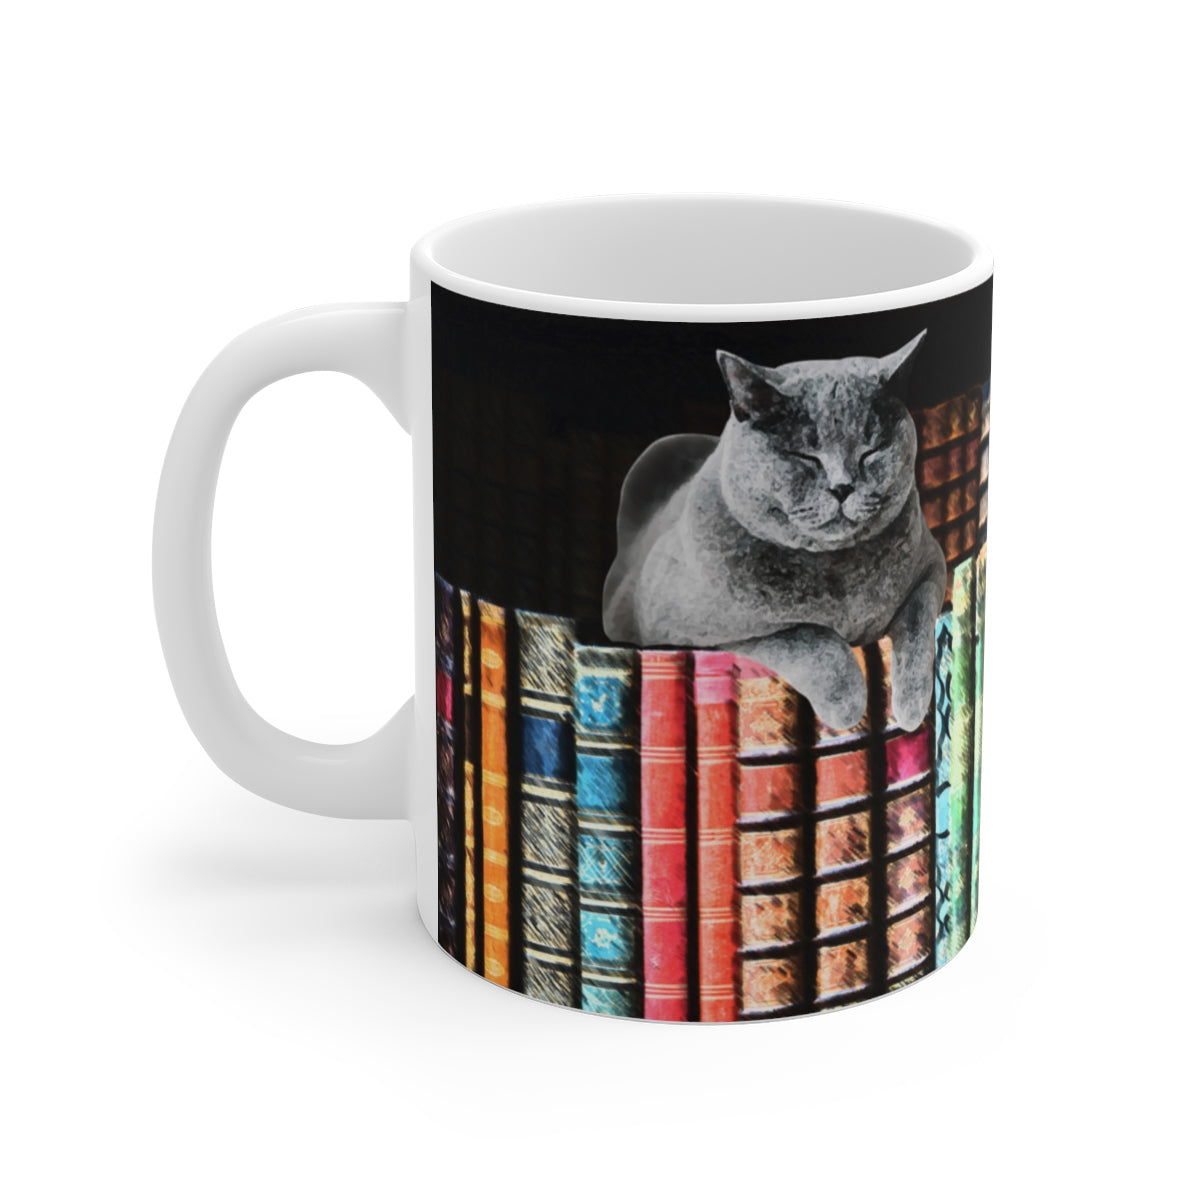 Vintage Library Cat Coffee Mug